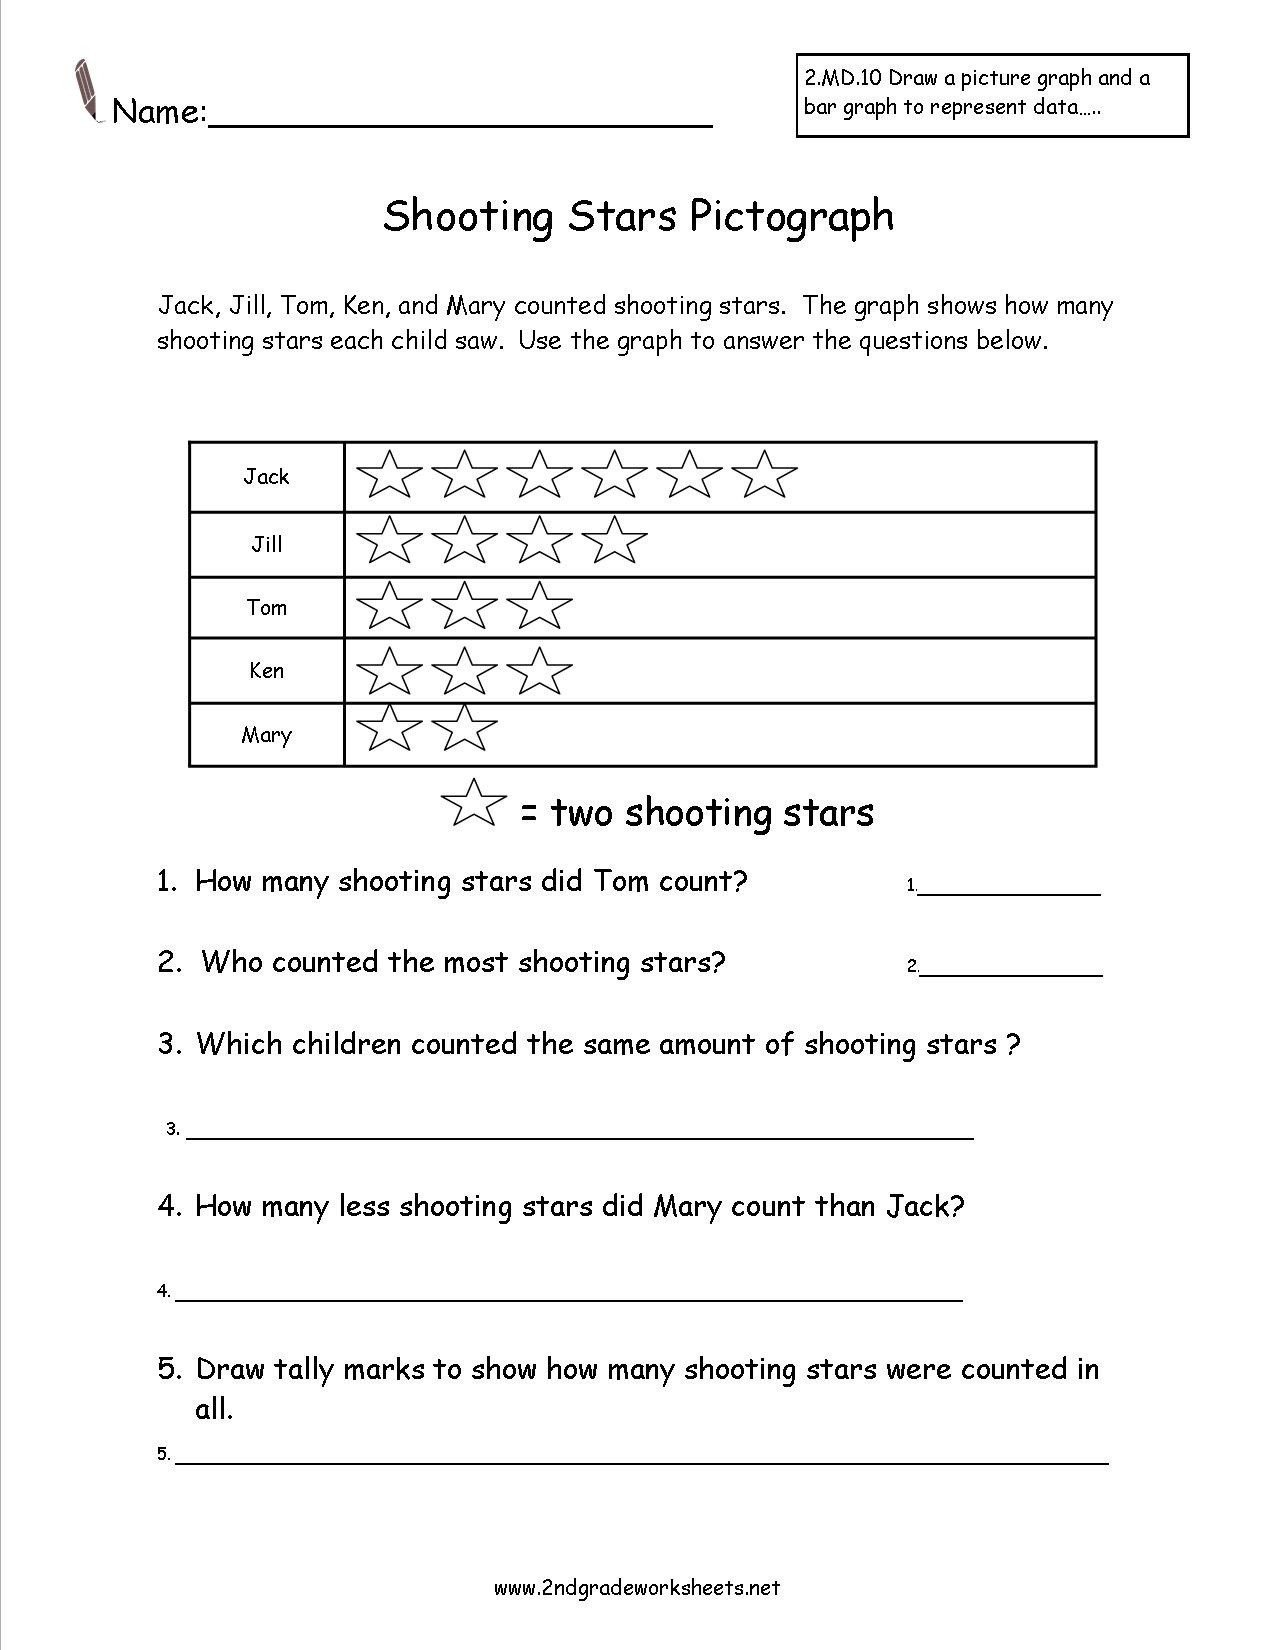 4th Grade Frequency Table Worksheets 20 Frequency Table Worksheets 3rd Grade